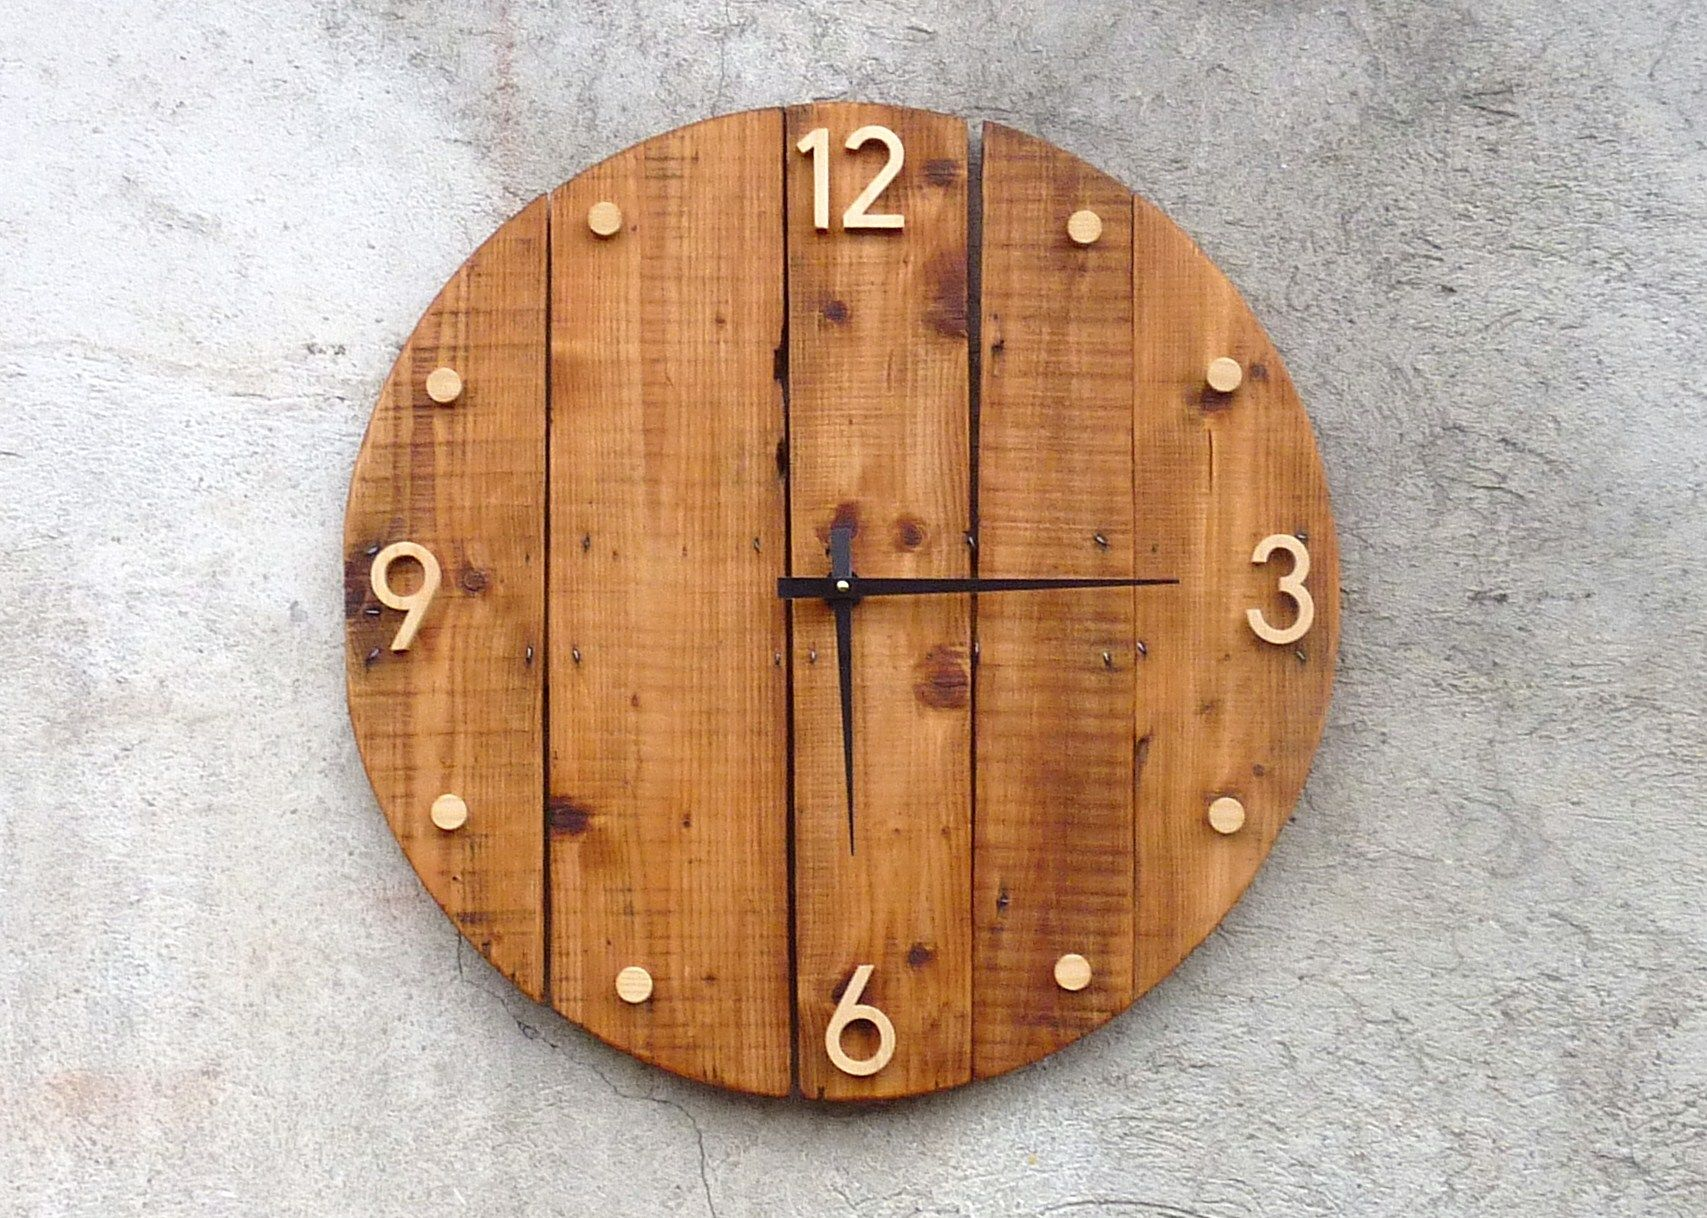 horloge murale en bois style rustique et industriel bois rustique horloges murales et horloge. Black Bedroom Furniture Sets. Home Design Ideas